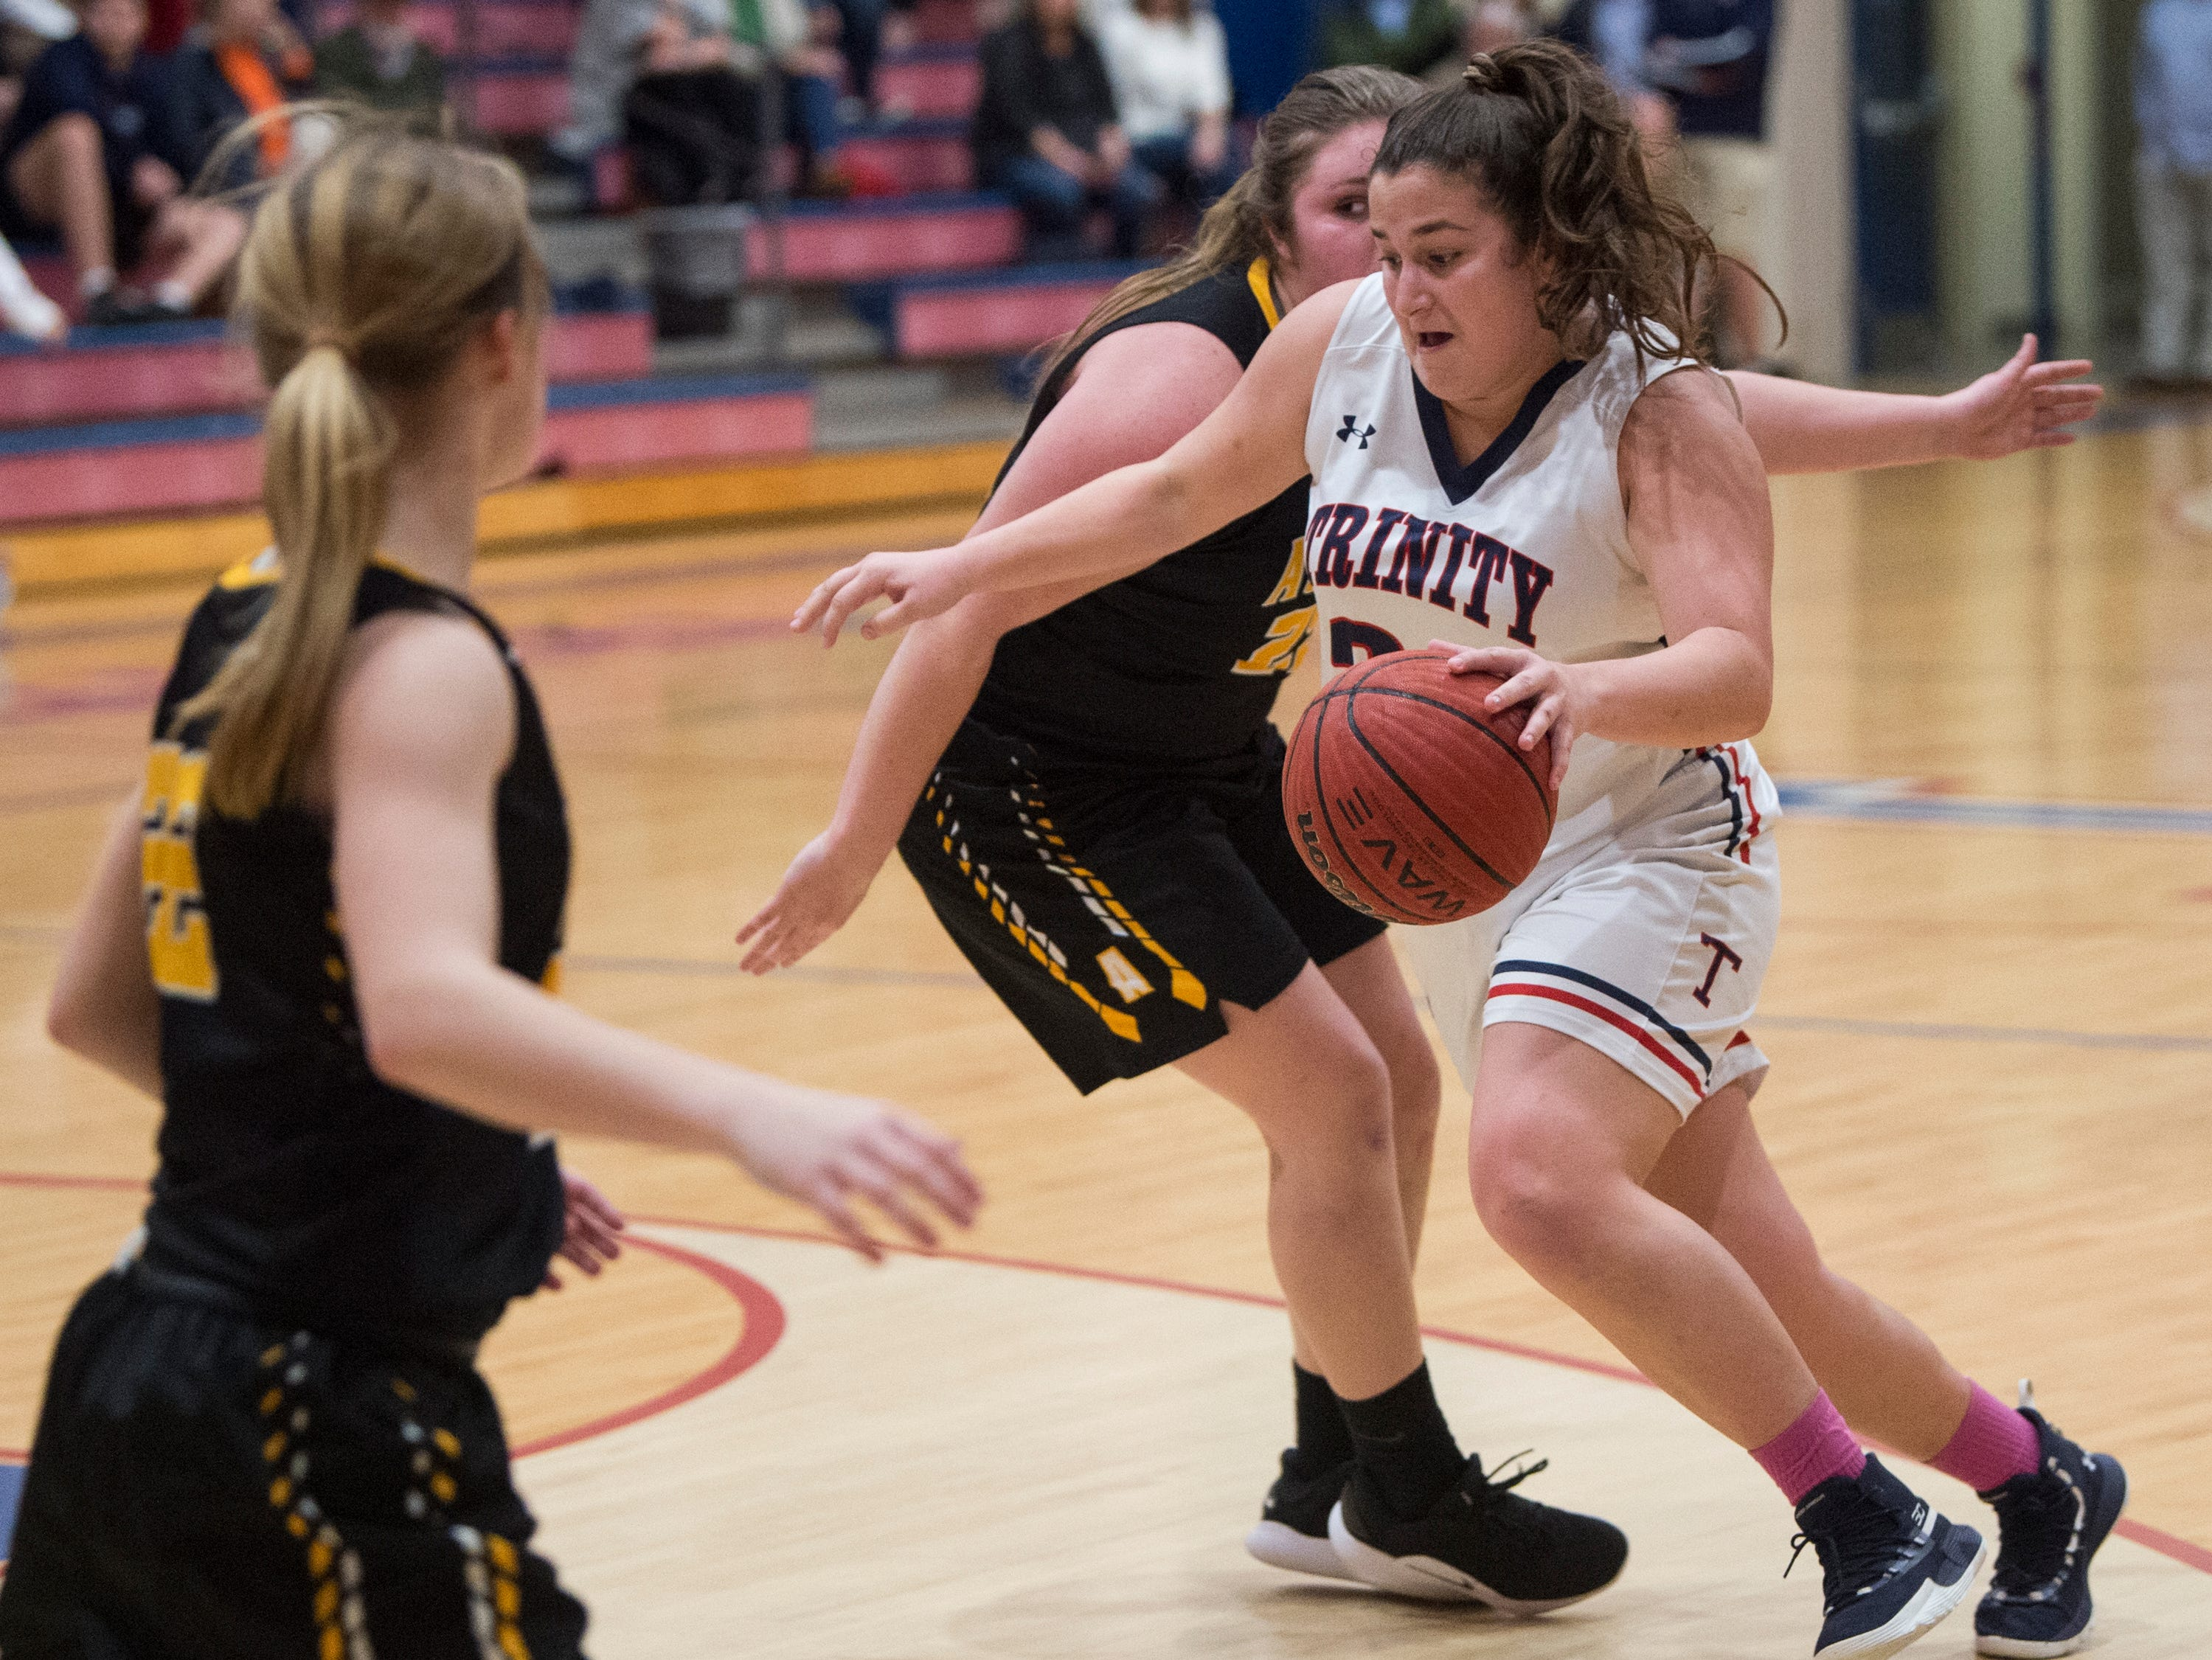 Trinity's Mackenzie Avant (24) drives the ball to the basket during the Class 4A subregional at Trinity Presbyterian High School in Montgomery, Ala., on Monday, Feb. 11, 2019. Trinity defeated Ashford 66-28.